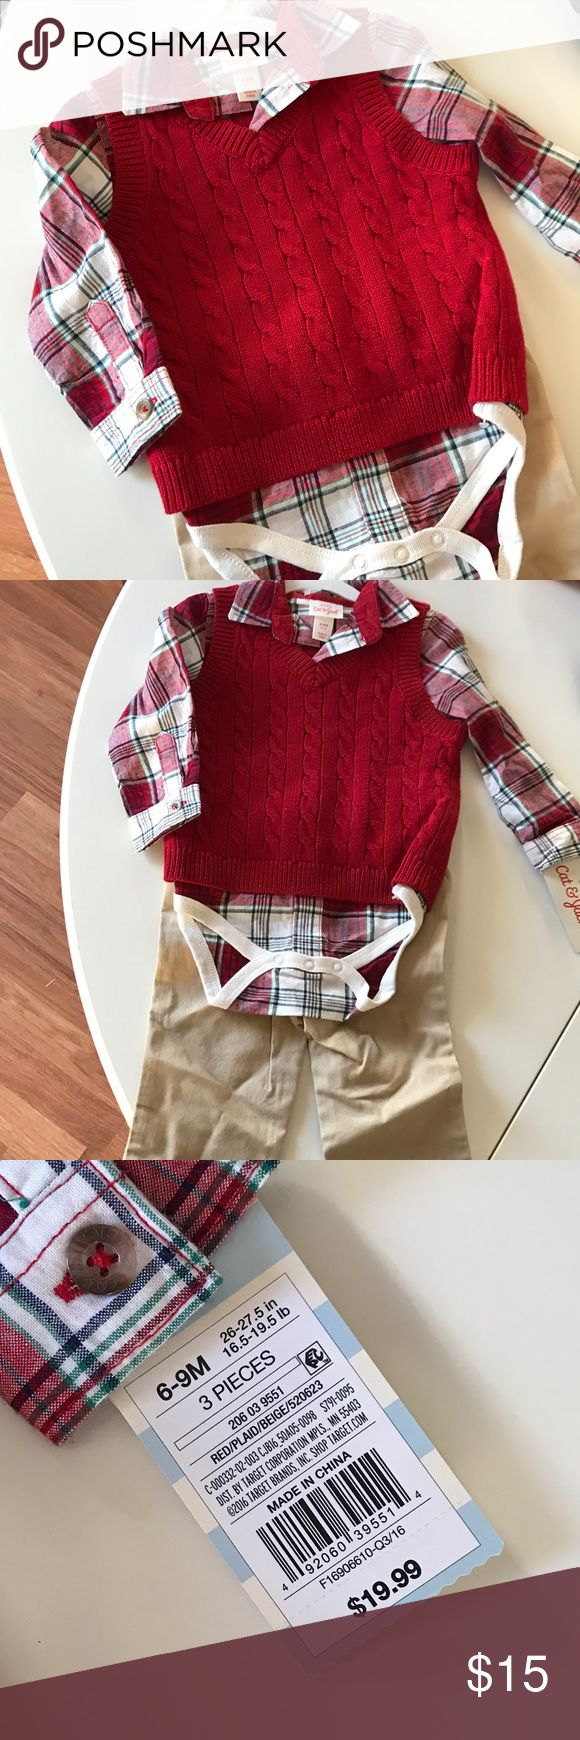 Baby boy 3 piece outfit 6-9mo baby boys 3 piece red and khaki outfit. Cat&Jack by Target 🎯 Cat & Jack for Target Accessories